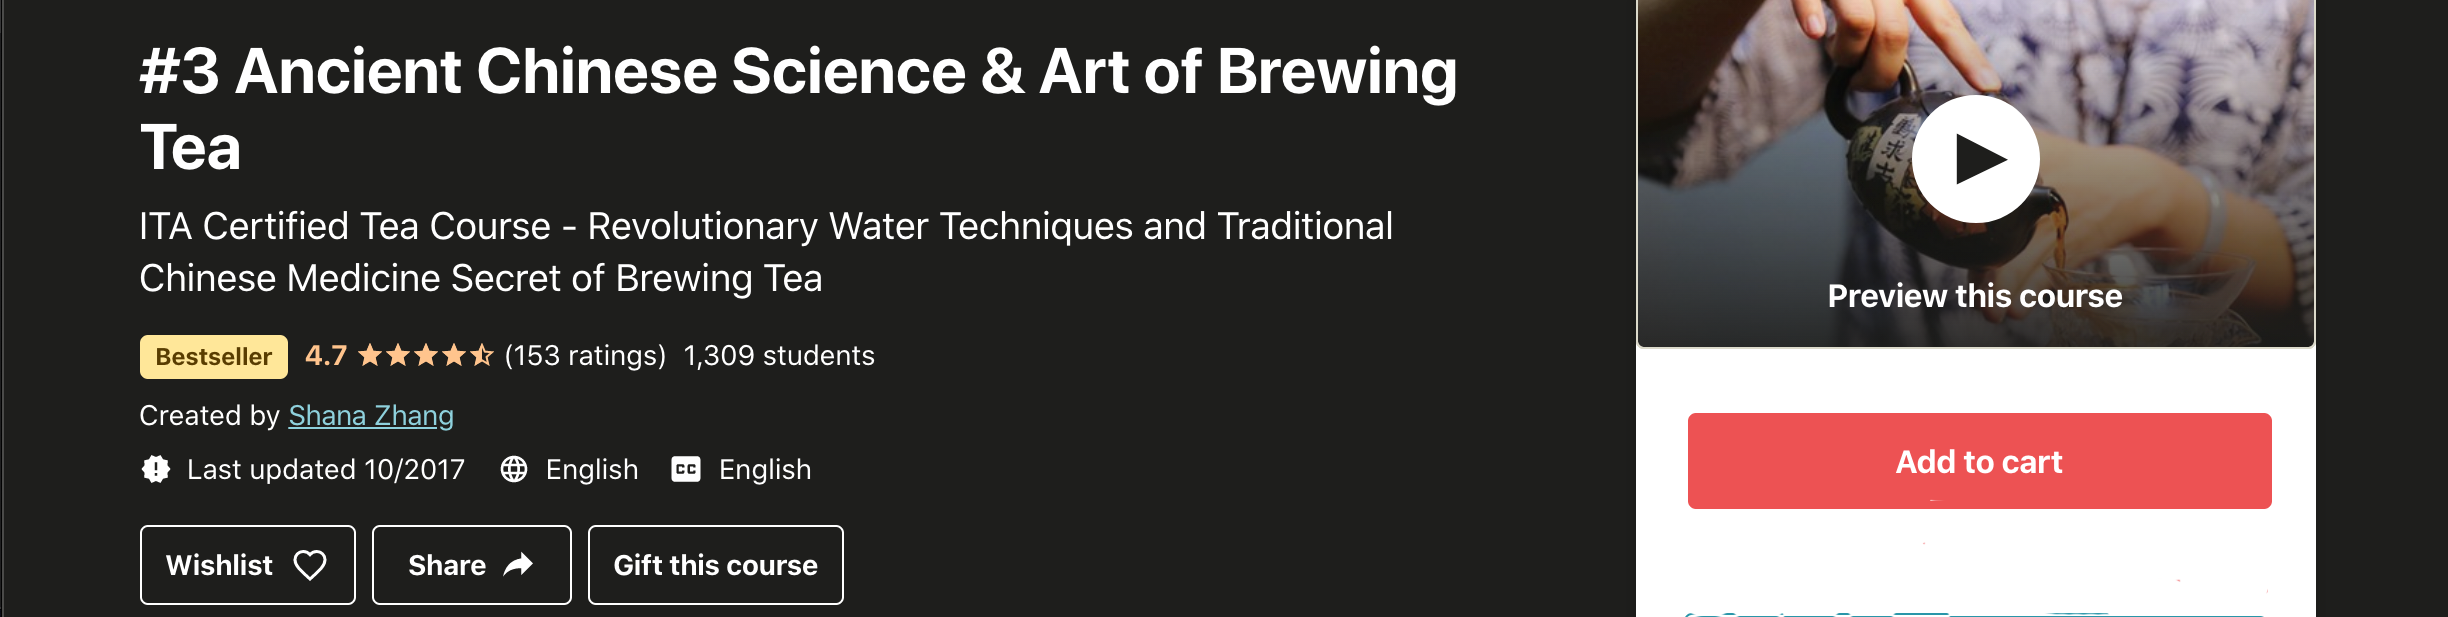 #3 Ancient Chinese Science & Art of Brewing Tea